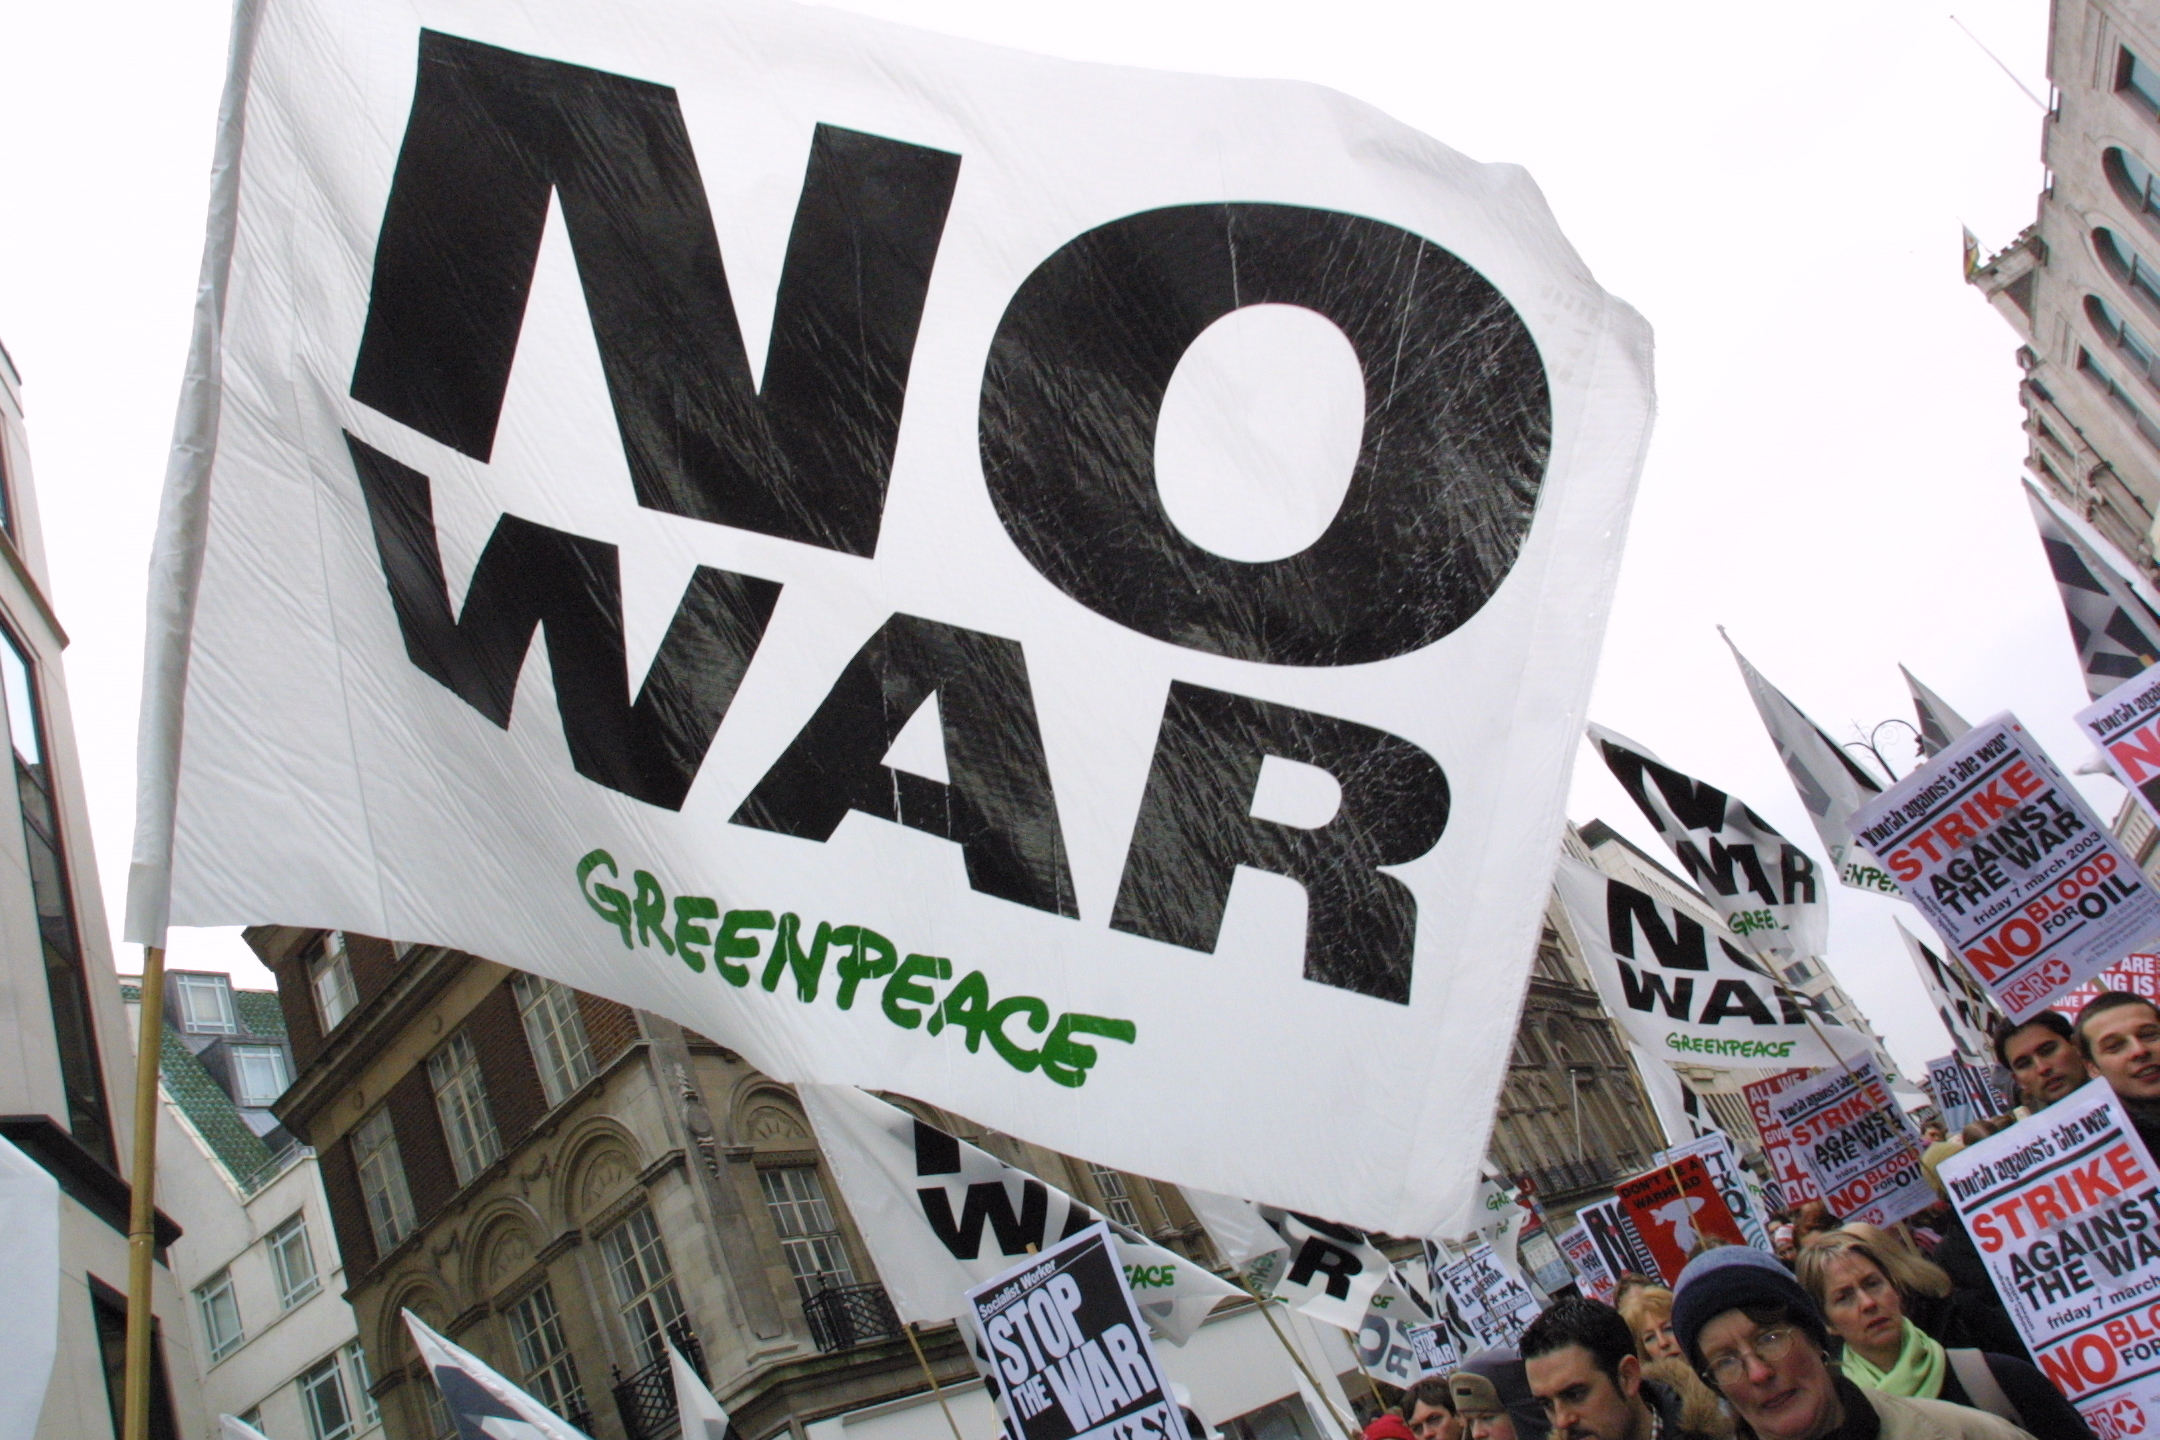 No War banner with greenpeace on it